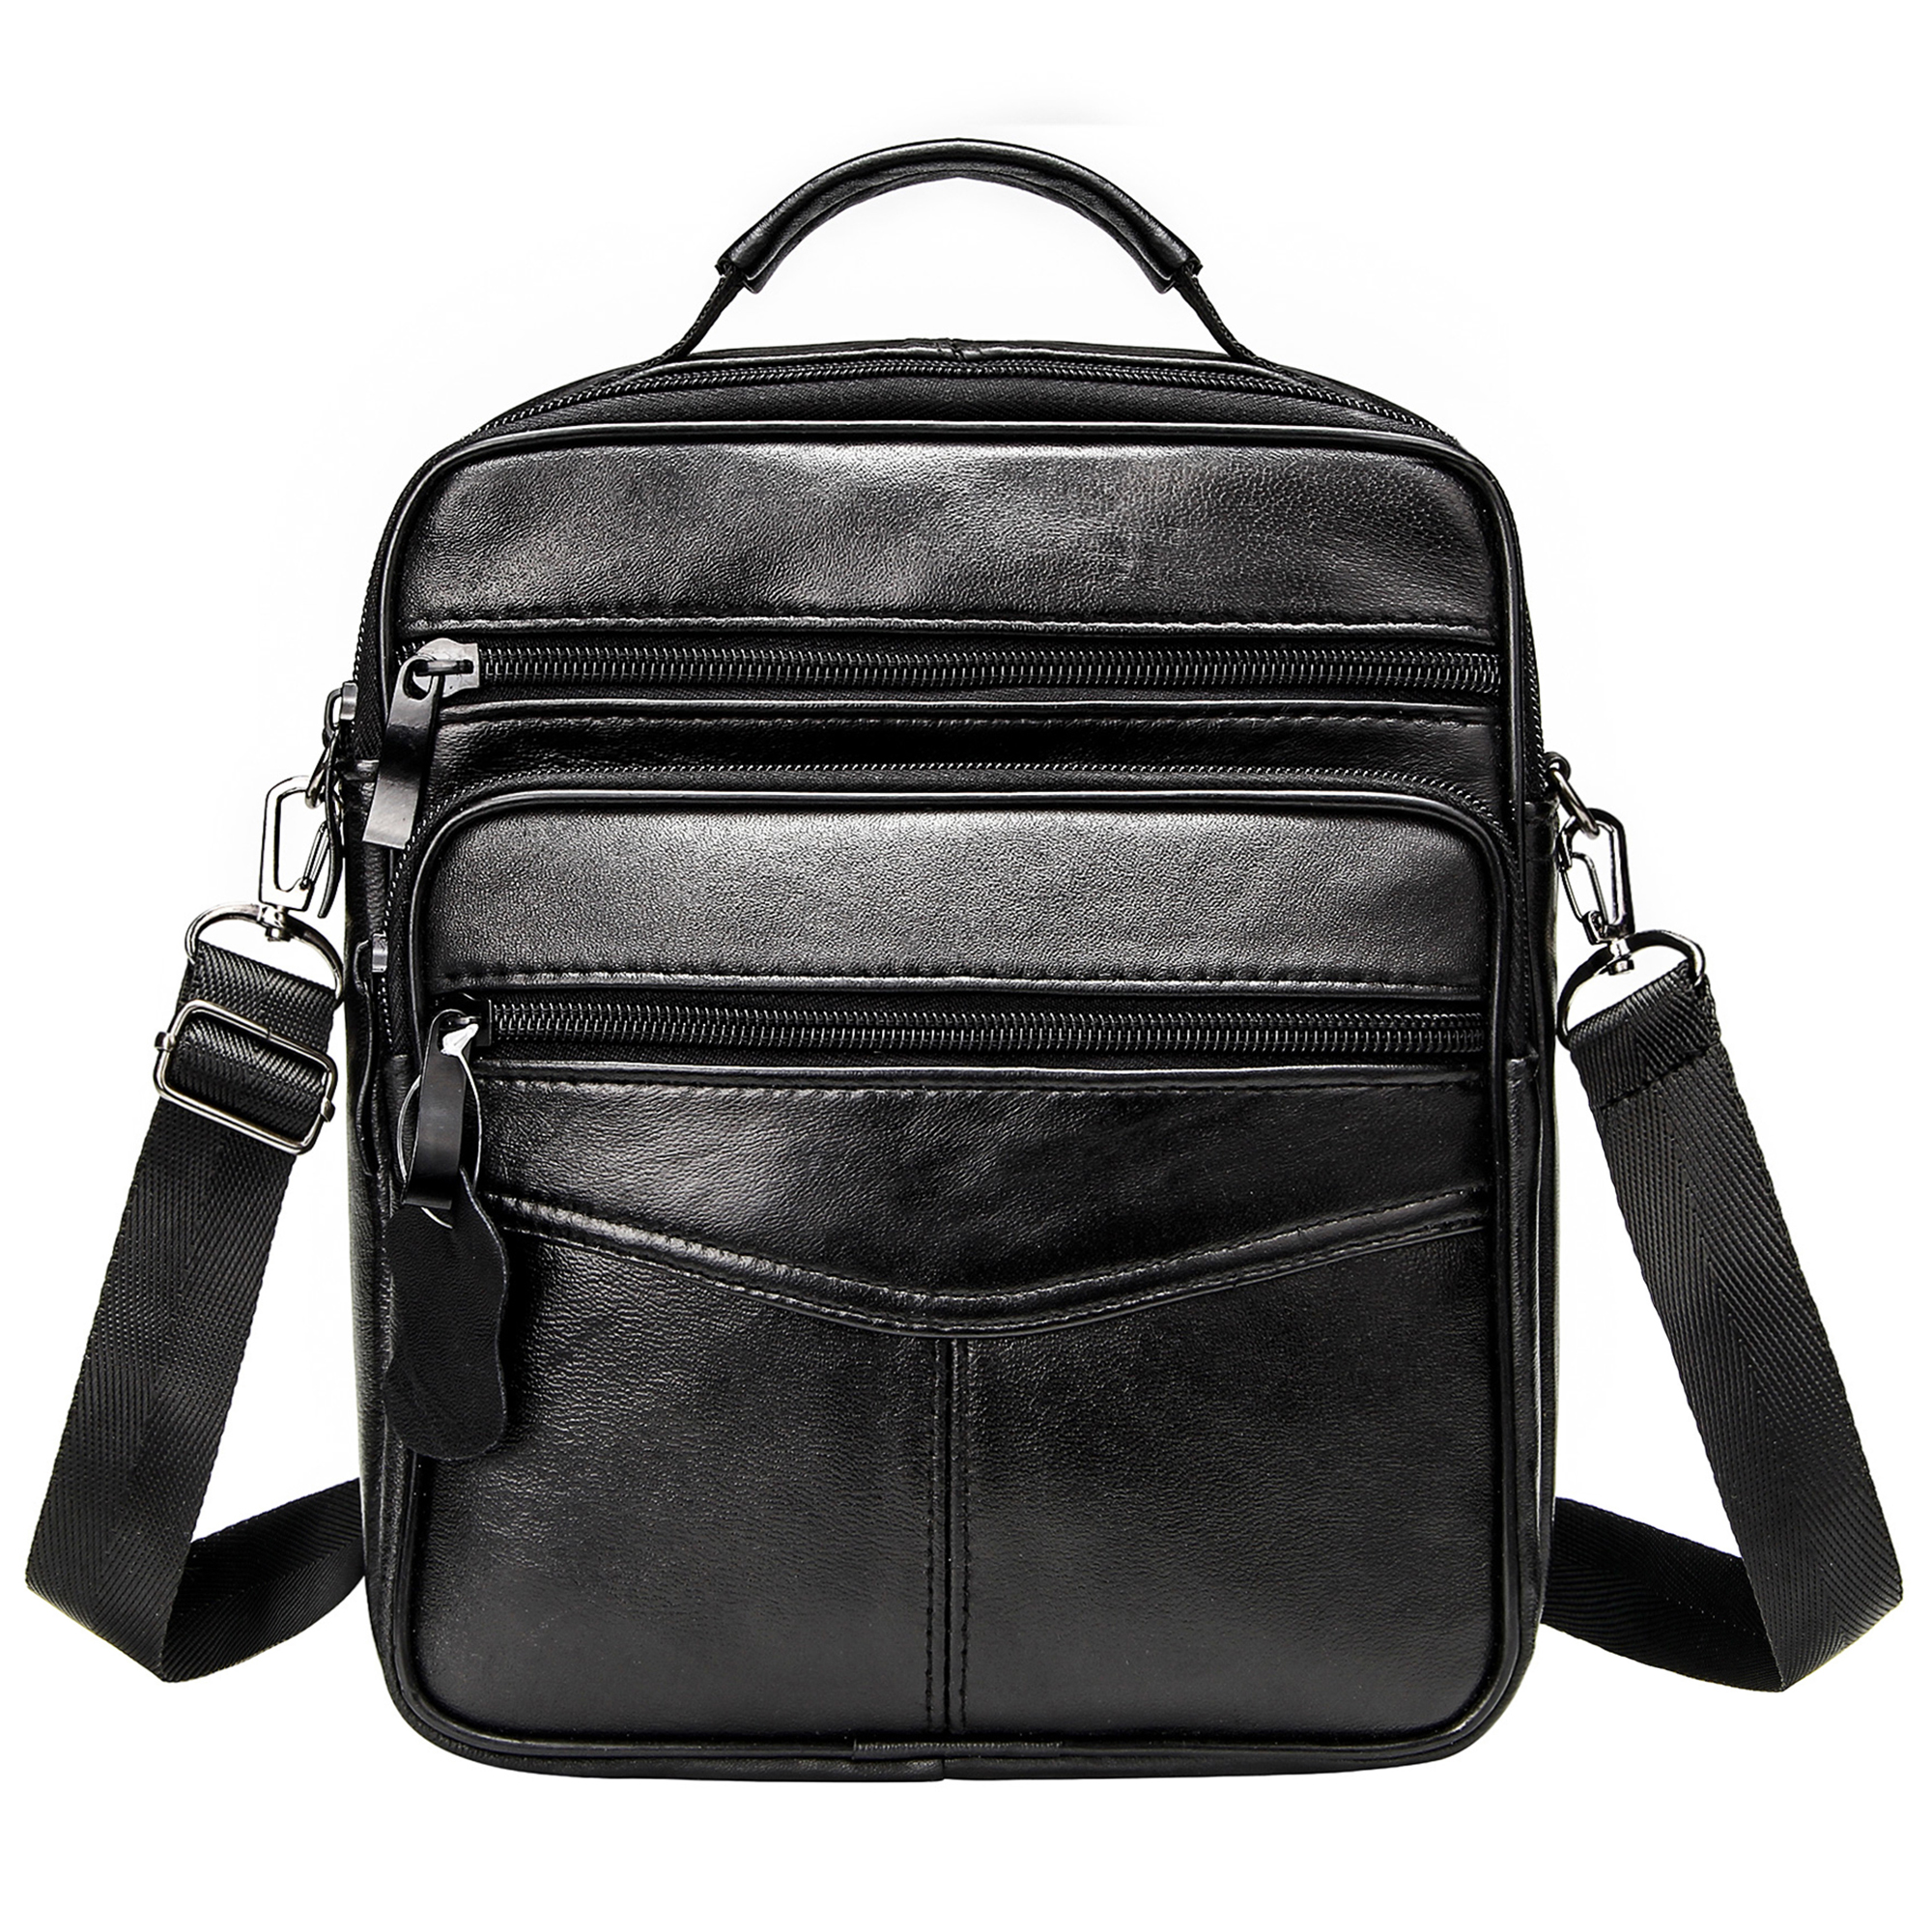 Leather Business Briefcase Men Portable Handbags Casual Black Shoulder Bags Men's Genuine Leather Messenger Bag For Male